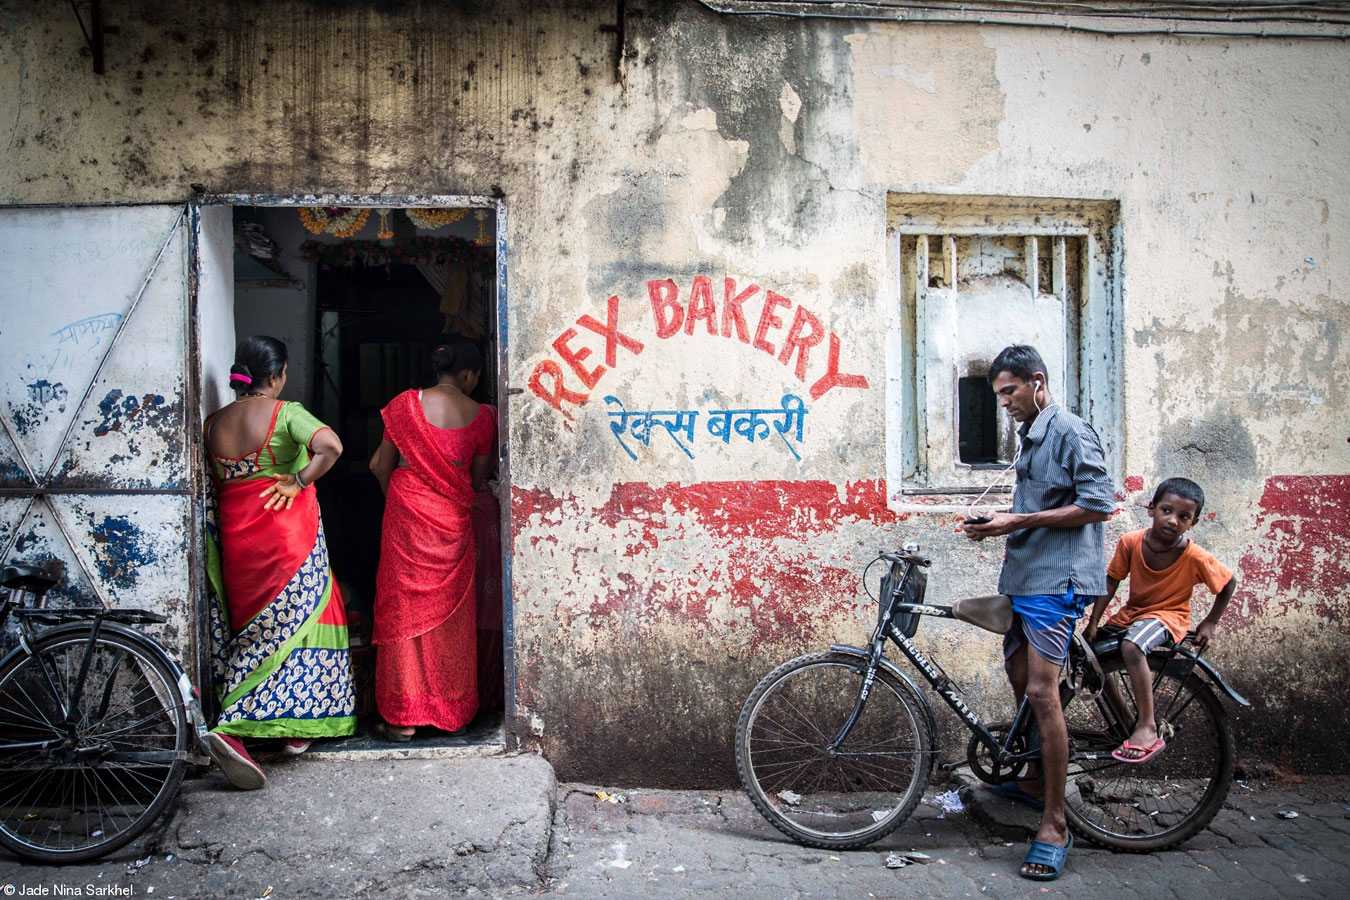 Rex Bakery, © Jade Nina Sarkhel, United Kingdom, 1st Place, Food for Sale, Pink Lady Food Photographer of the Year